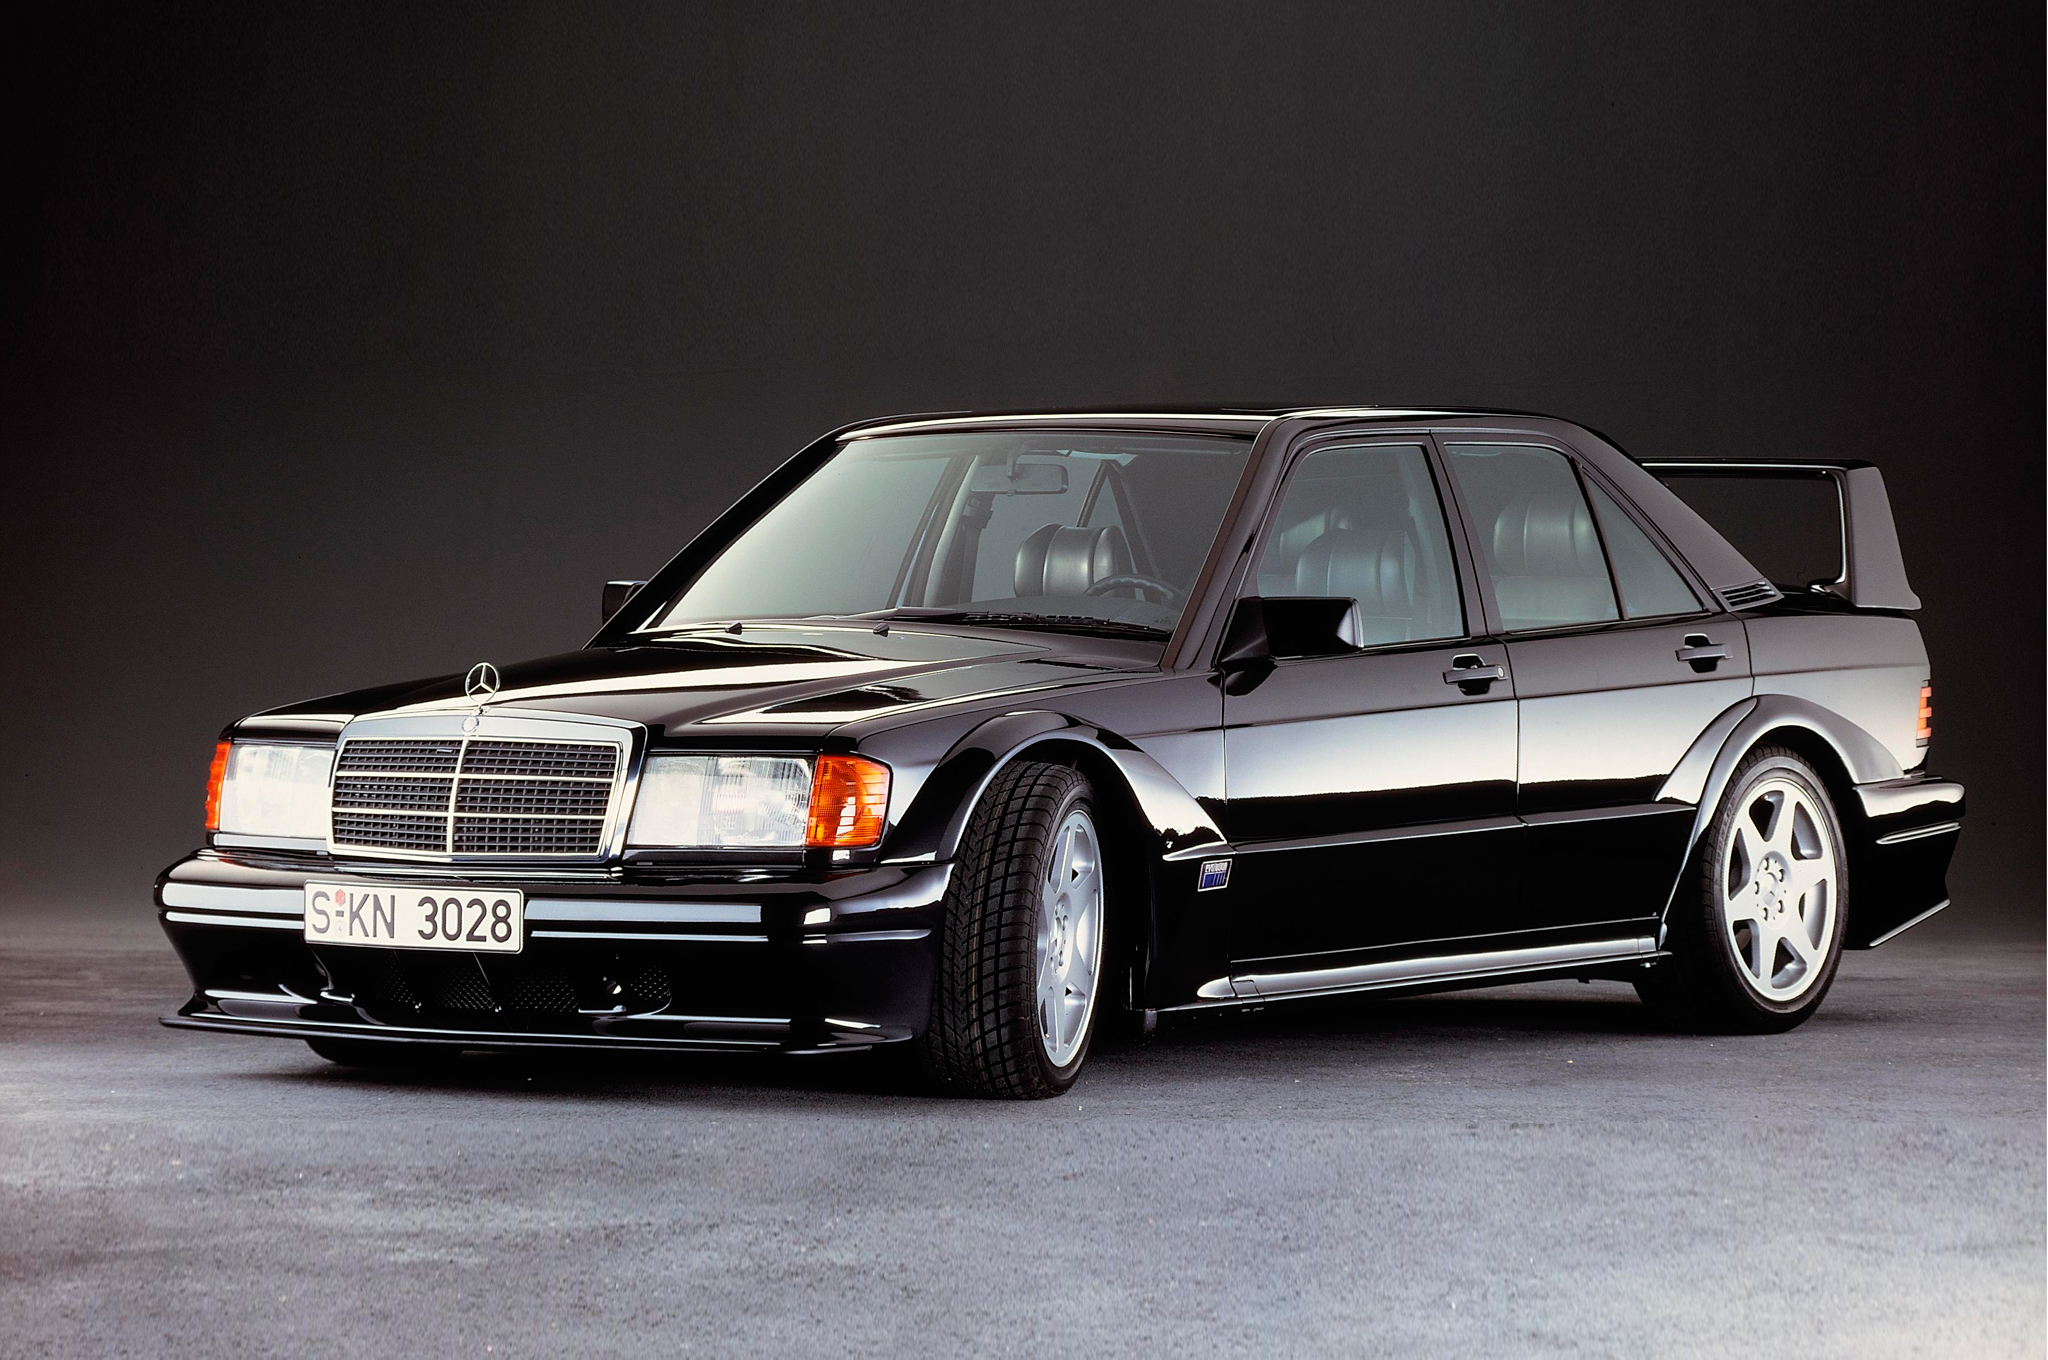 Mercedes-Benz 190 E 2.5-16 Evolution II Turns 25 This Year